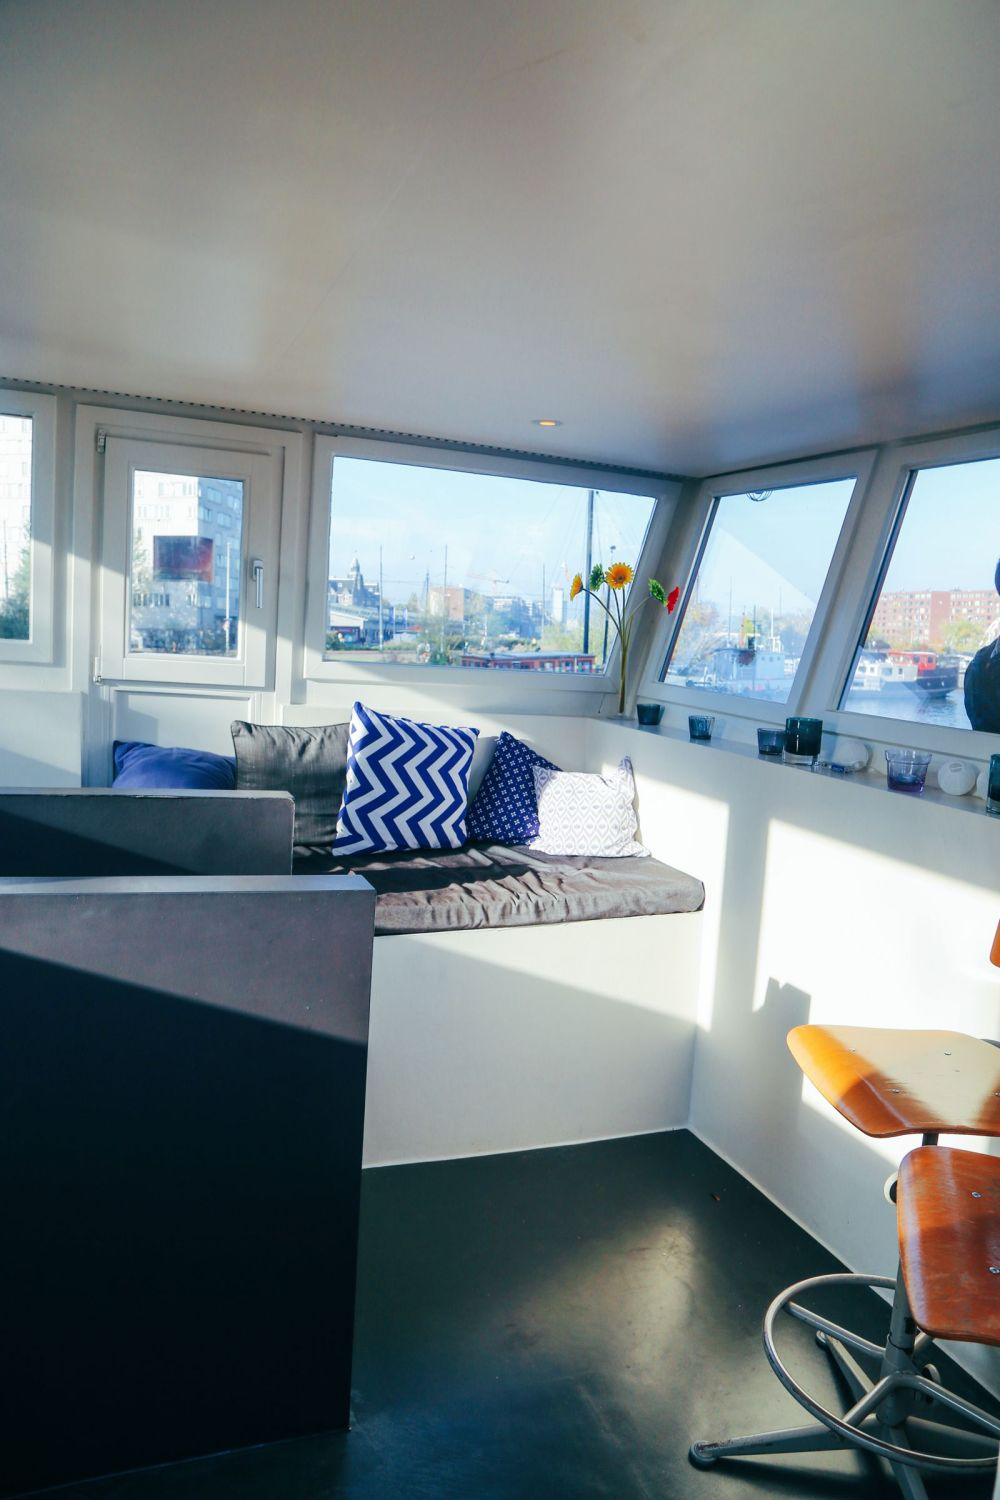 How To Stay On A Unique House Boat In Amsterdam, The Netherlands (16)